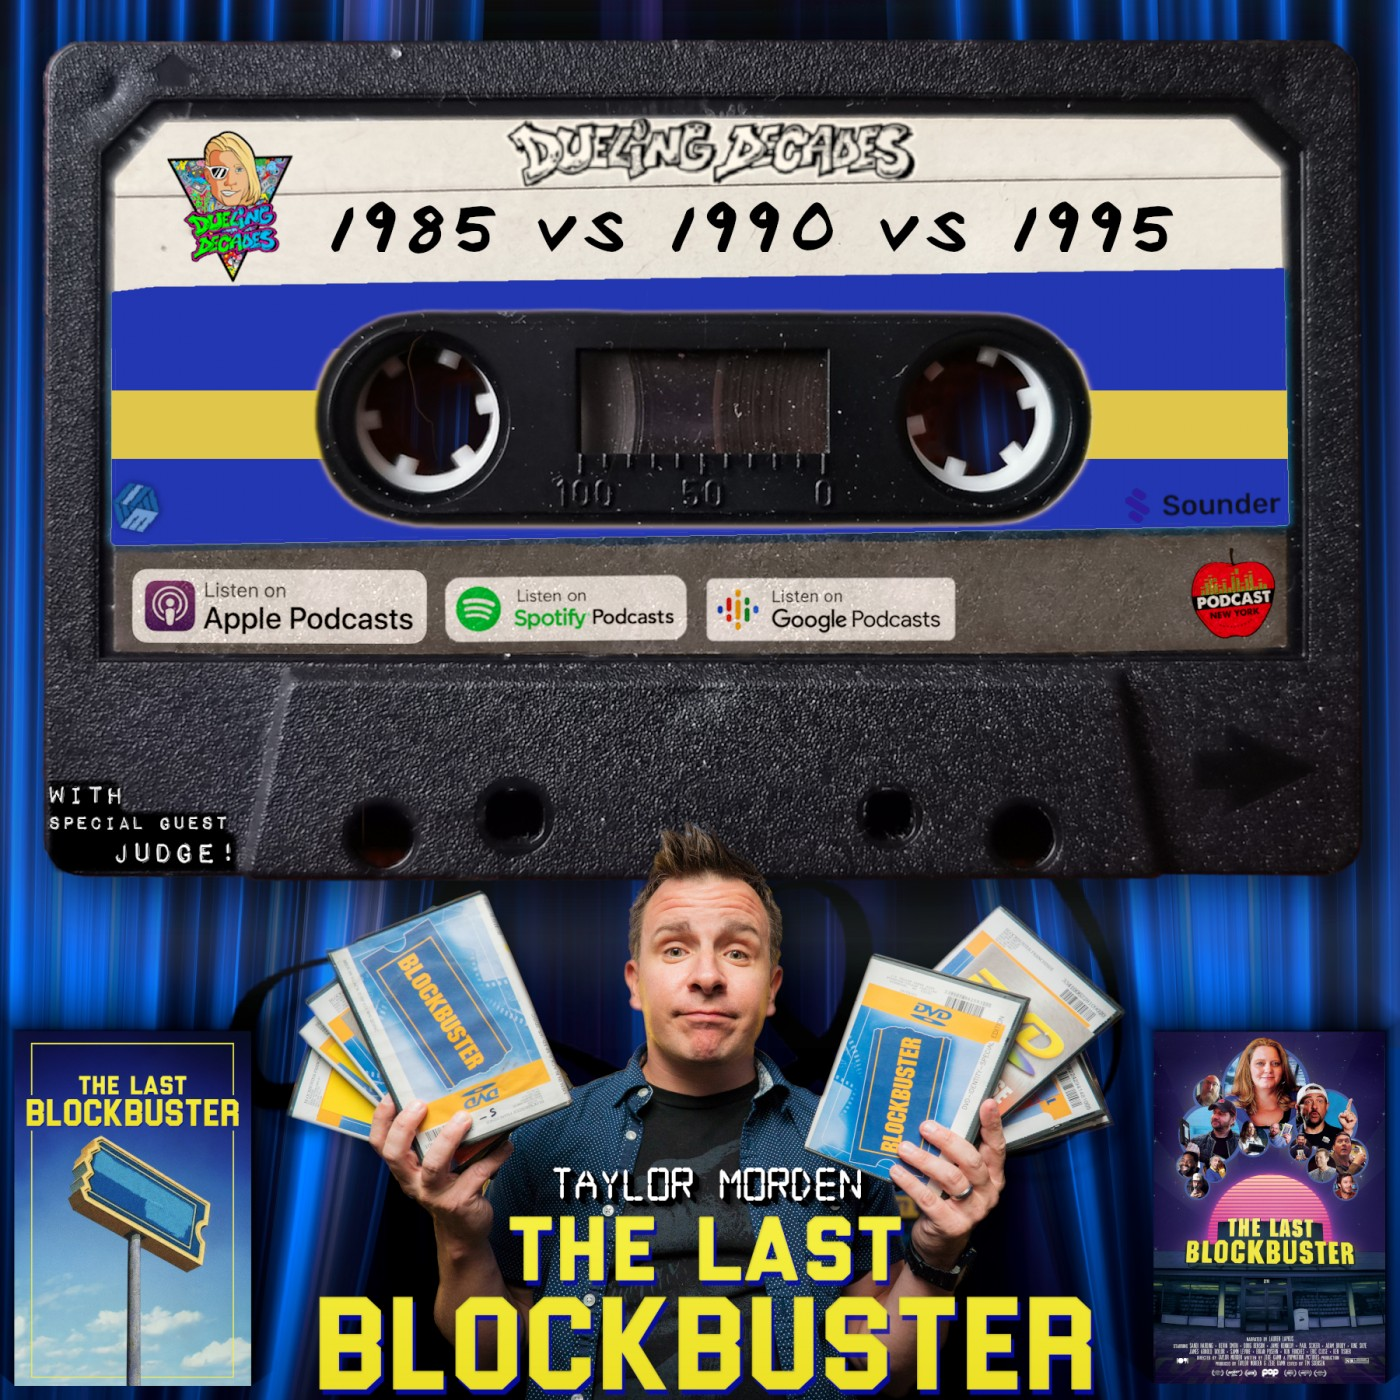 The Last Blockbuster director Taylor Morden judges this B-movie battle between 1985, 1990 & 1995!